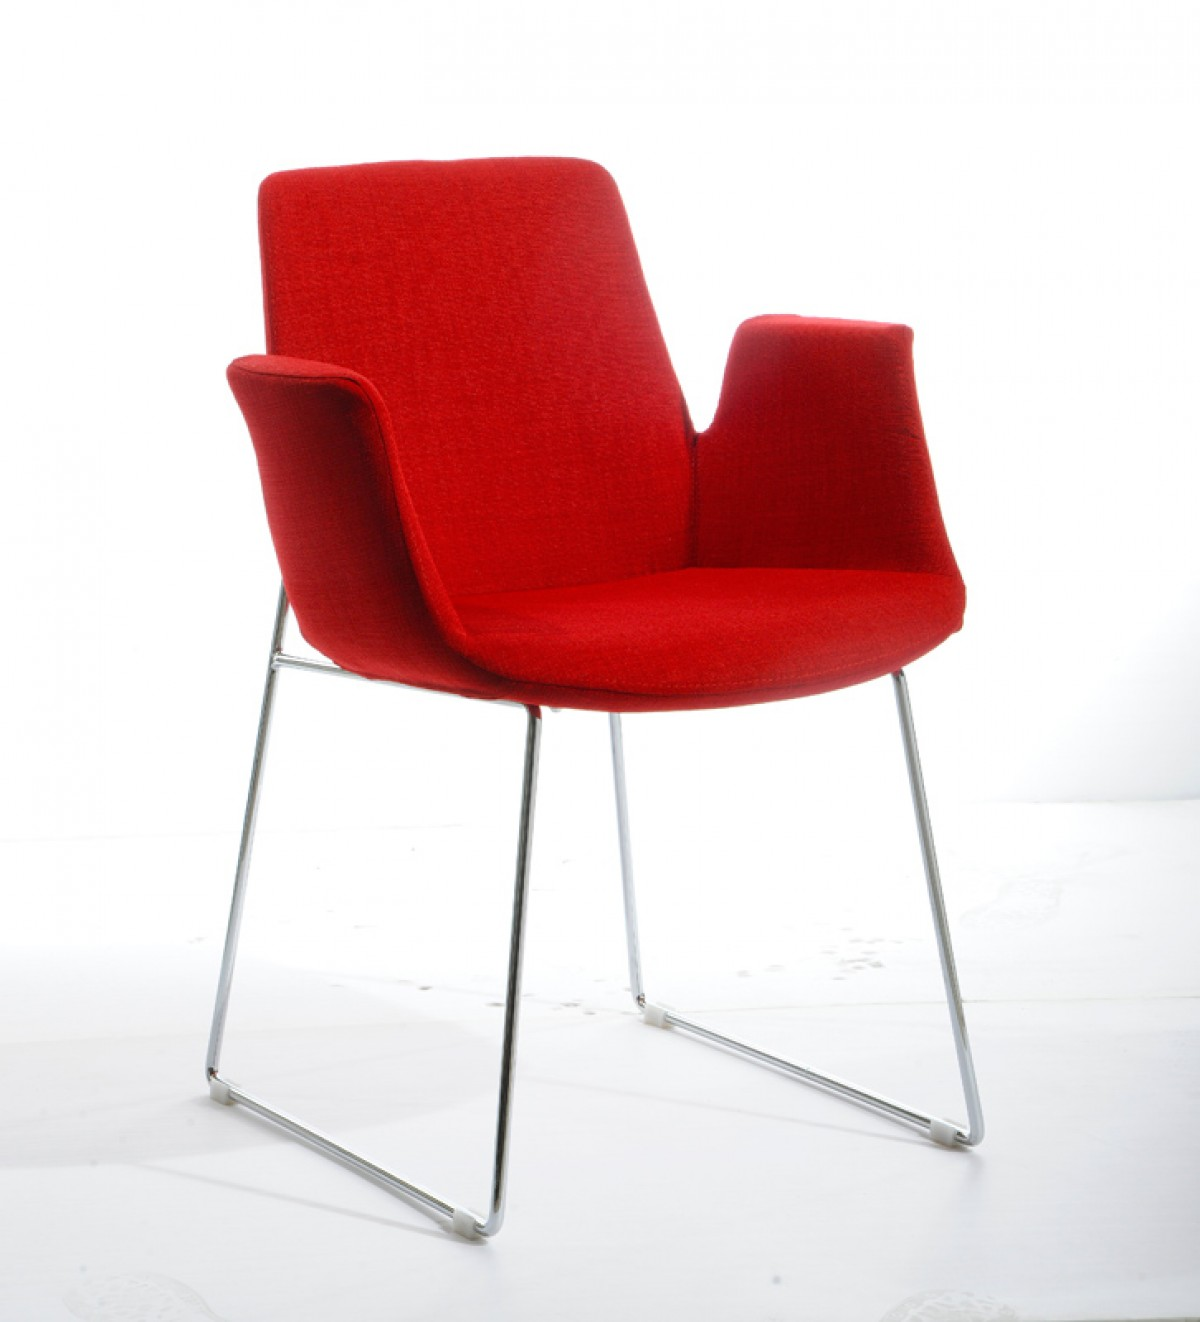 Modrest altair modern red fabric dining chair dining for Red dining room chairs